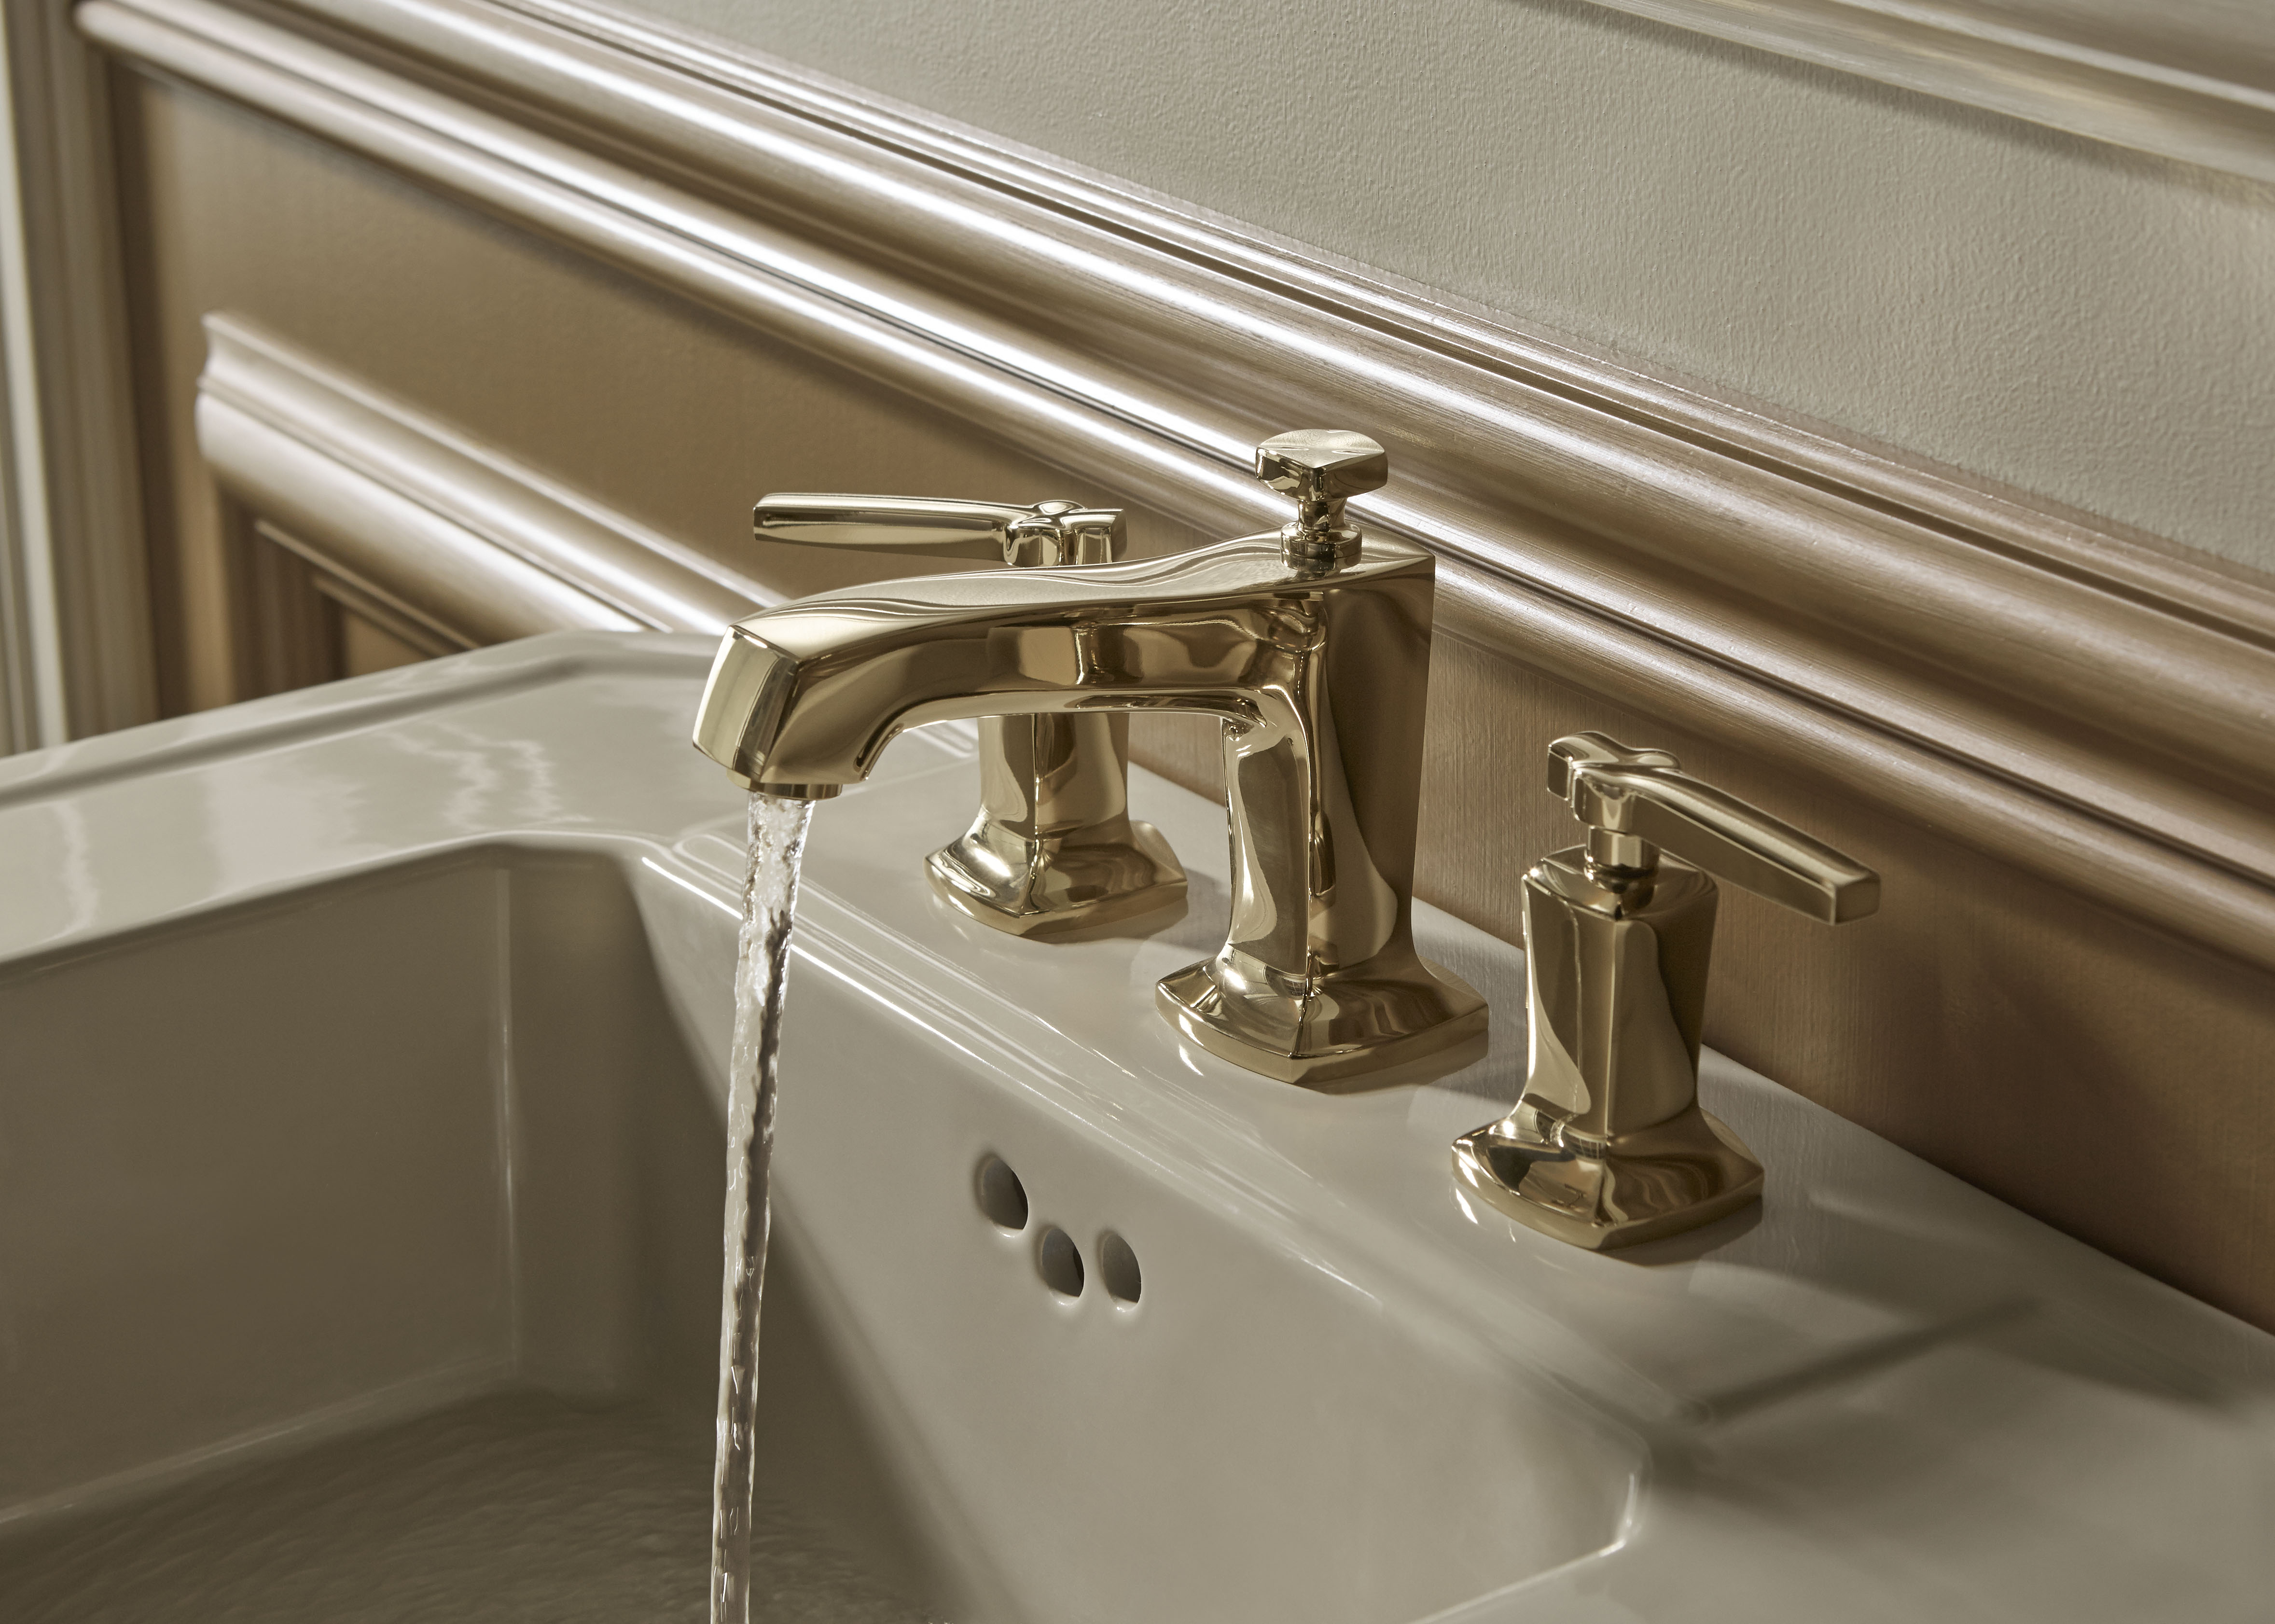 Margaux Faucet     Kathryn Sink     When paired with almond hues and pastels, a French Gold finish can provide a pop of warmth.